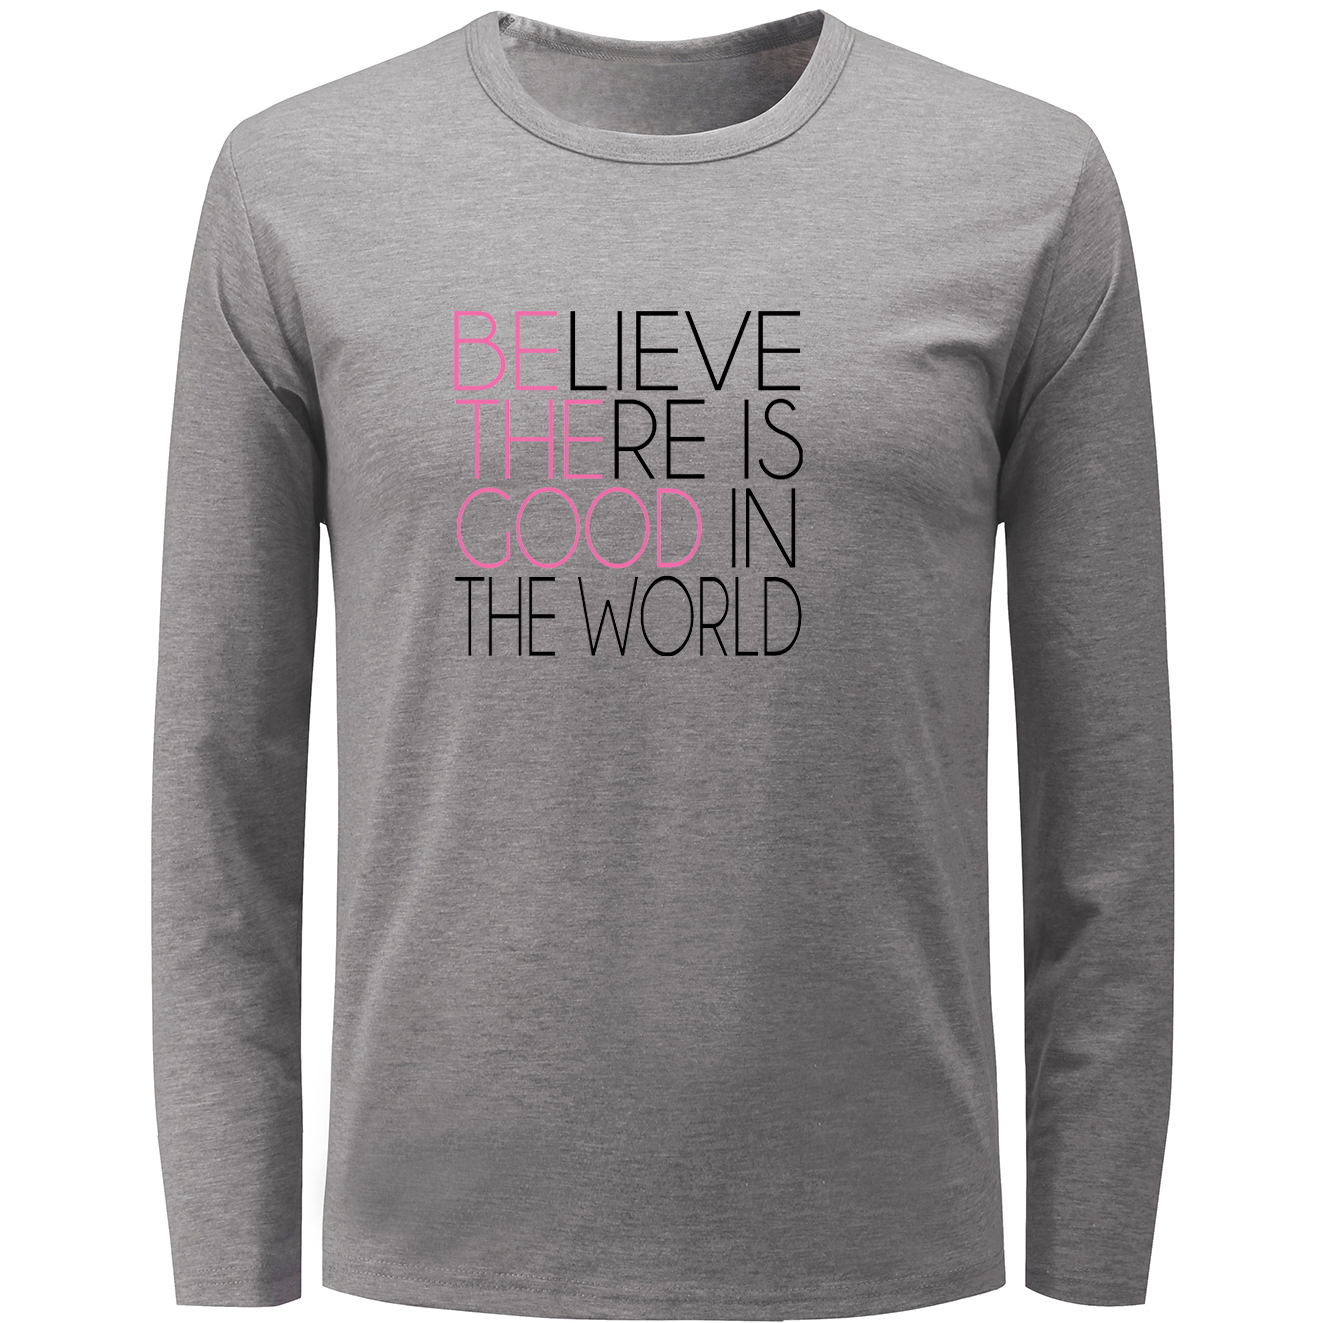 Belive There is Good in the Word Be The Good Tops Men's Women's Girl's Boy's T Shirt Long Sleeve T-shirt Fitness Tee Tshirt